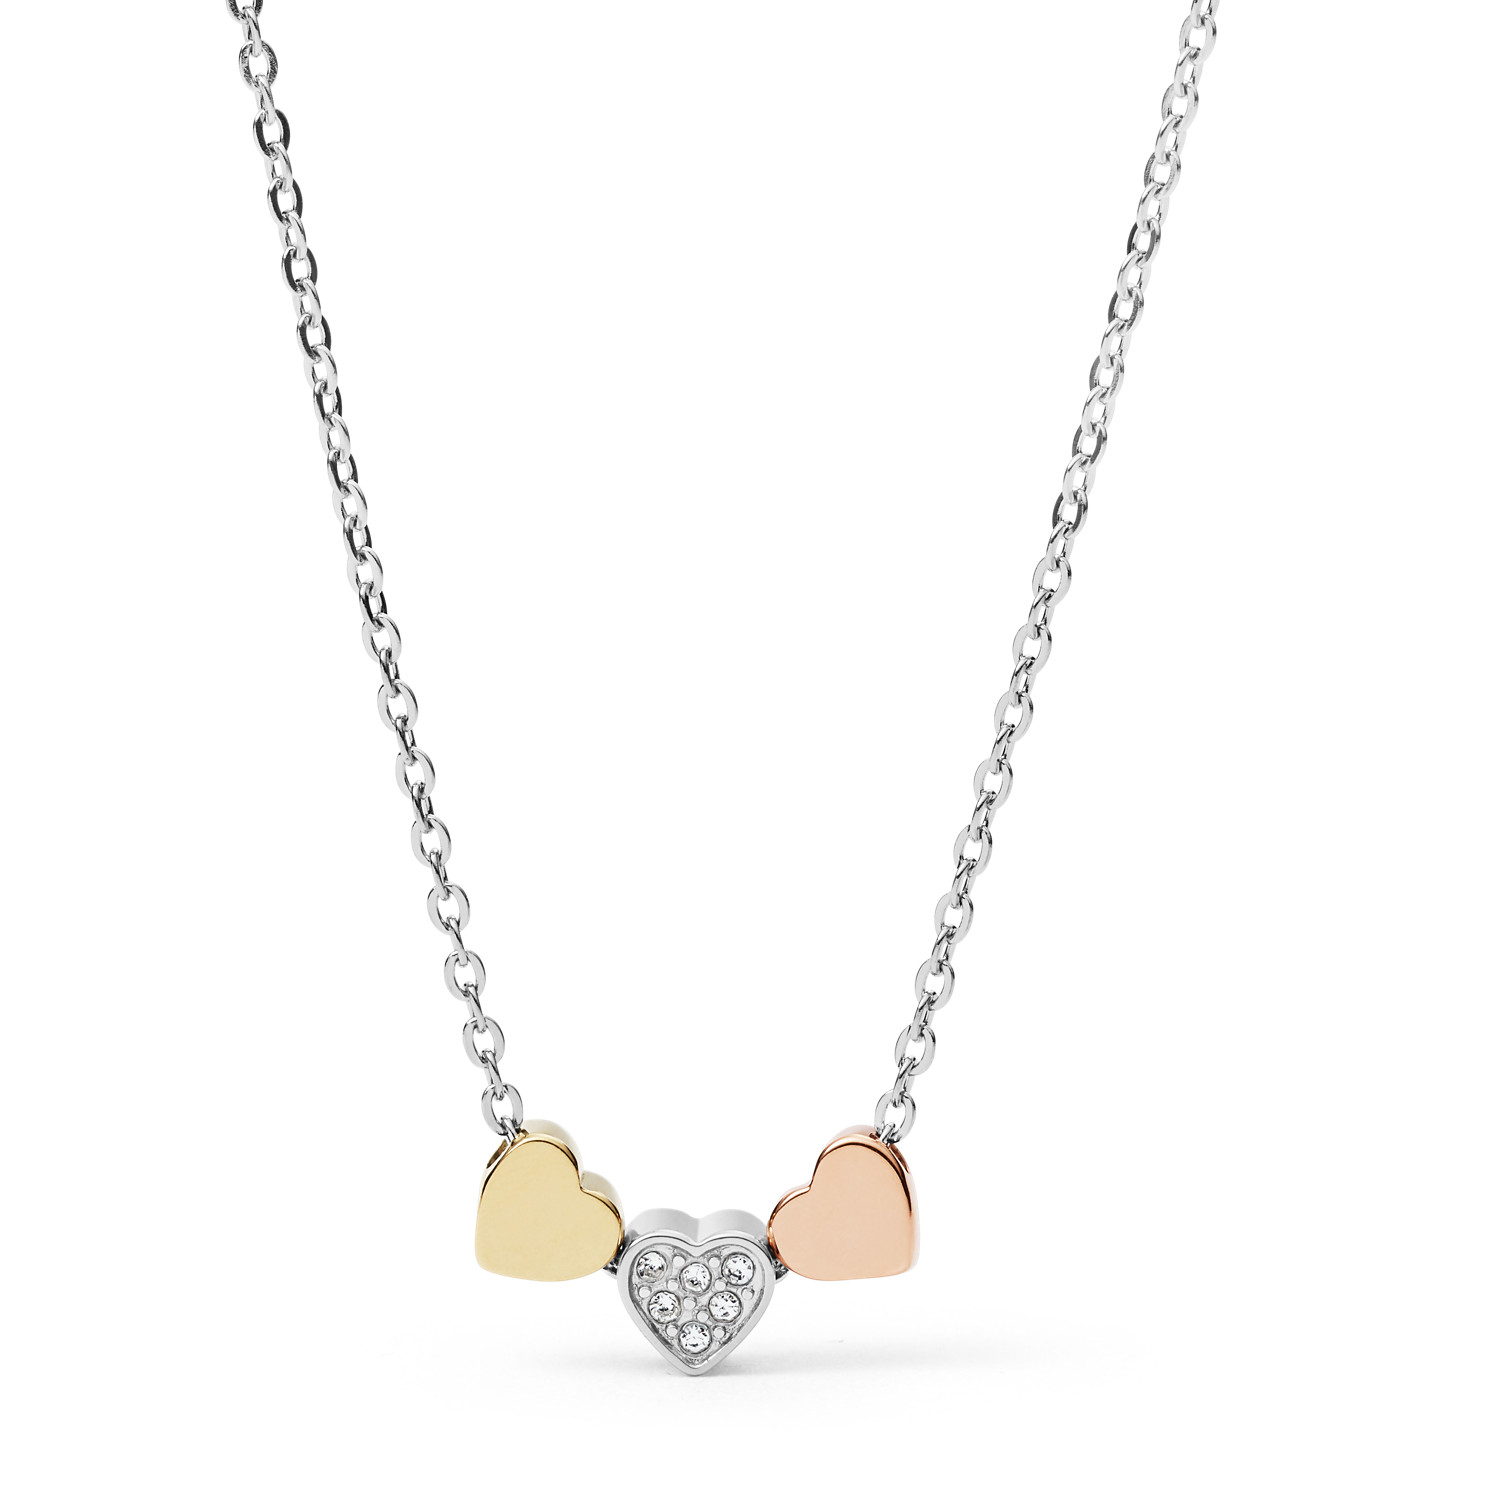 fashion index mini jewelry tous gold necklace w heart icon